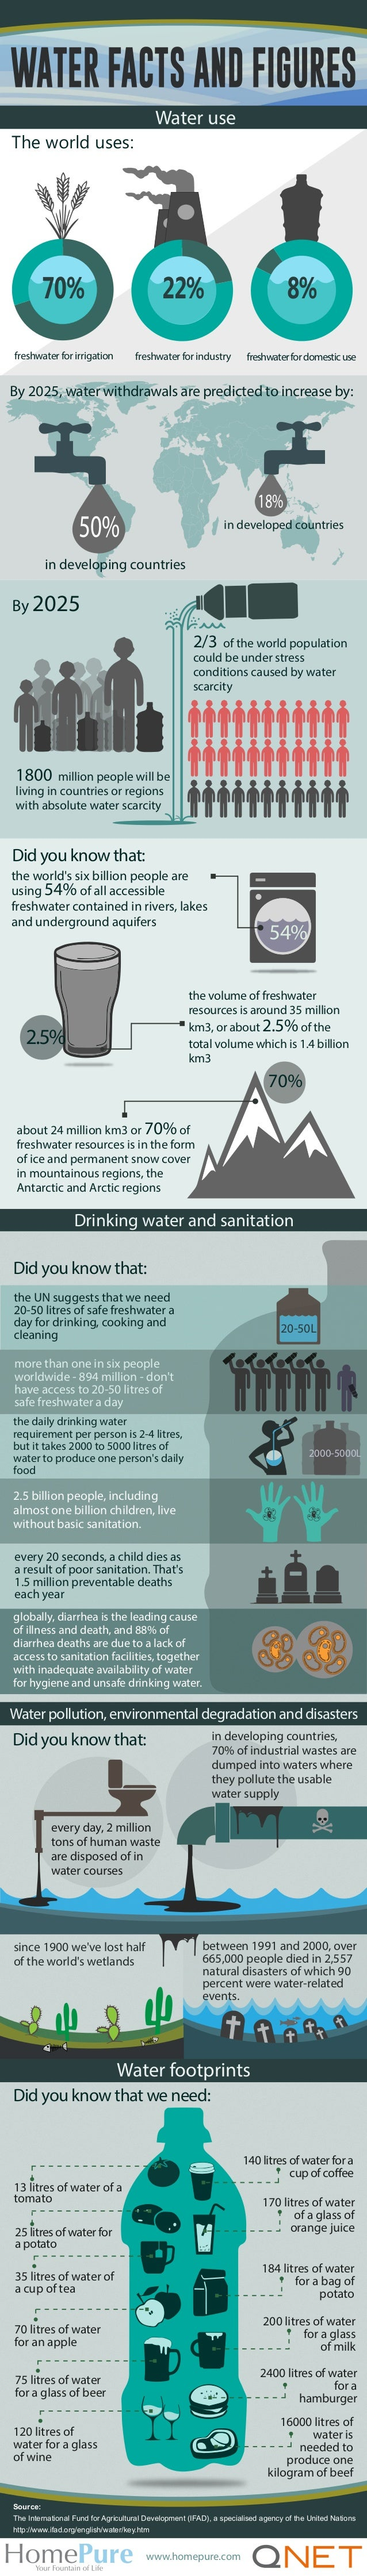 Water Facts and Figures